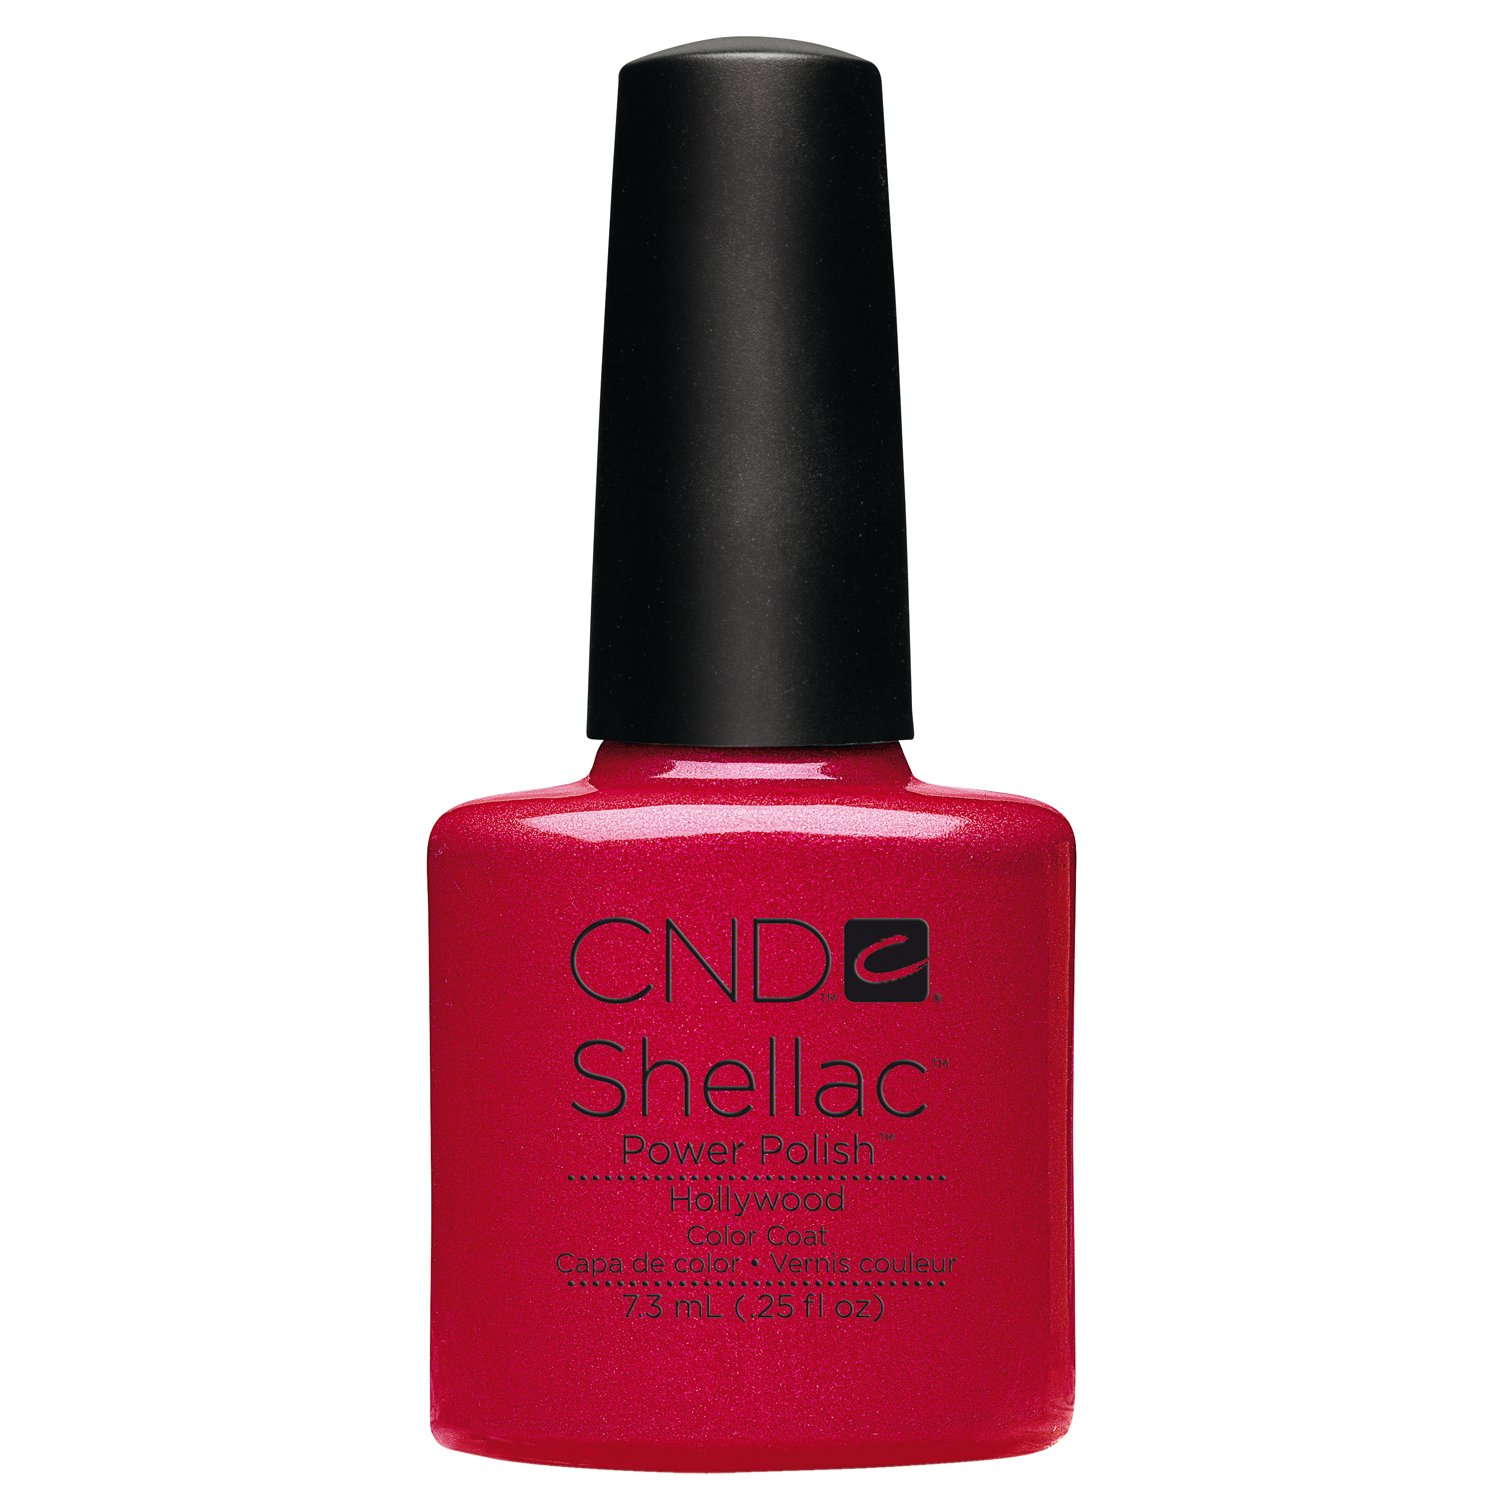 Who made the shellac is it true that after his nails are in terrible condition 39